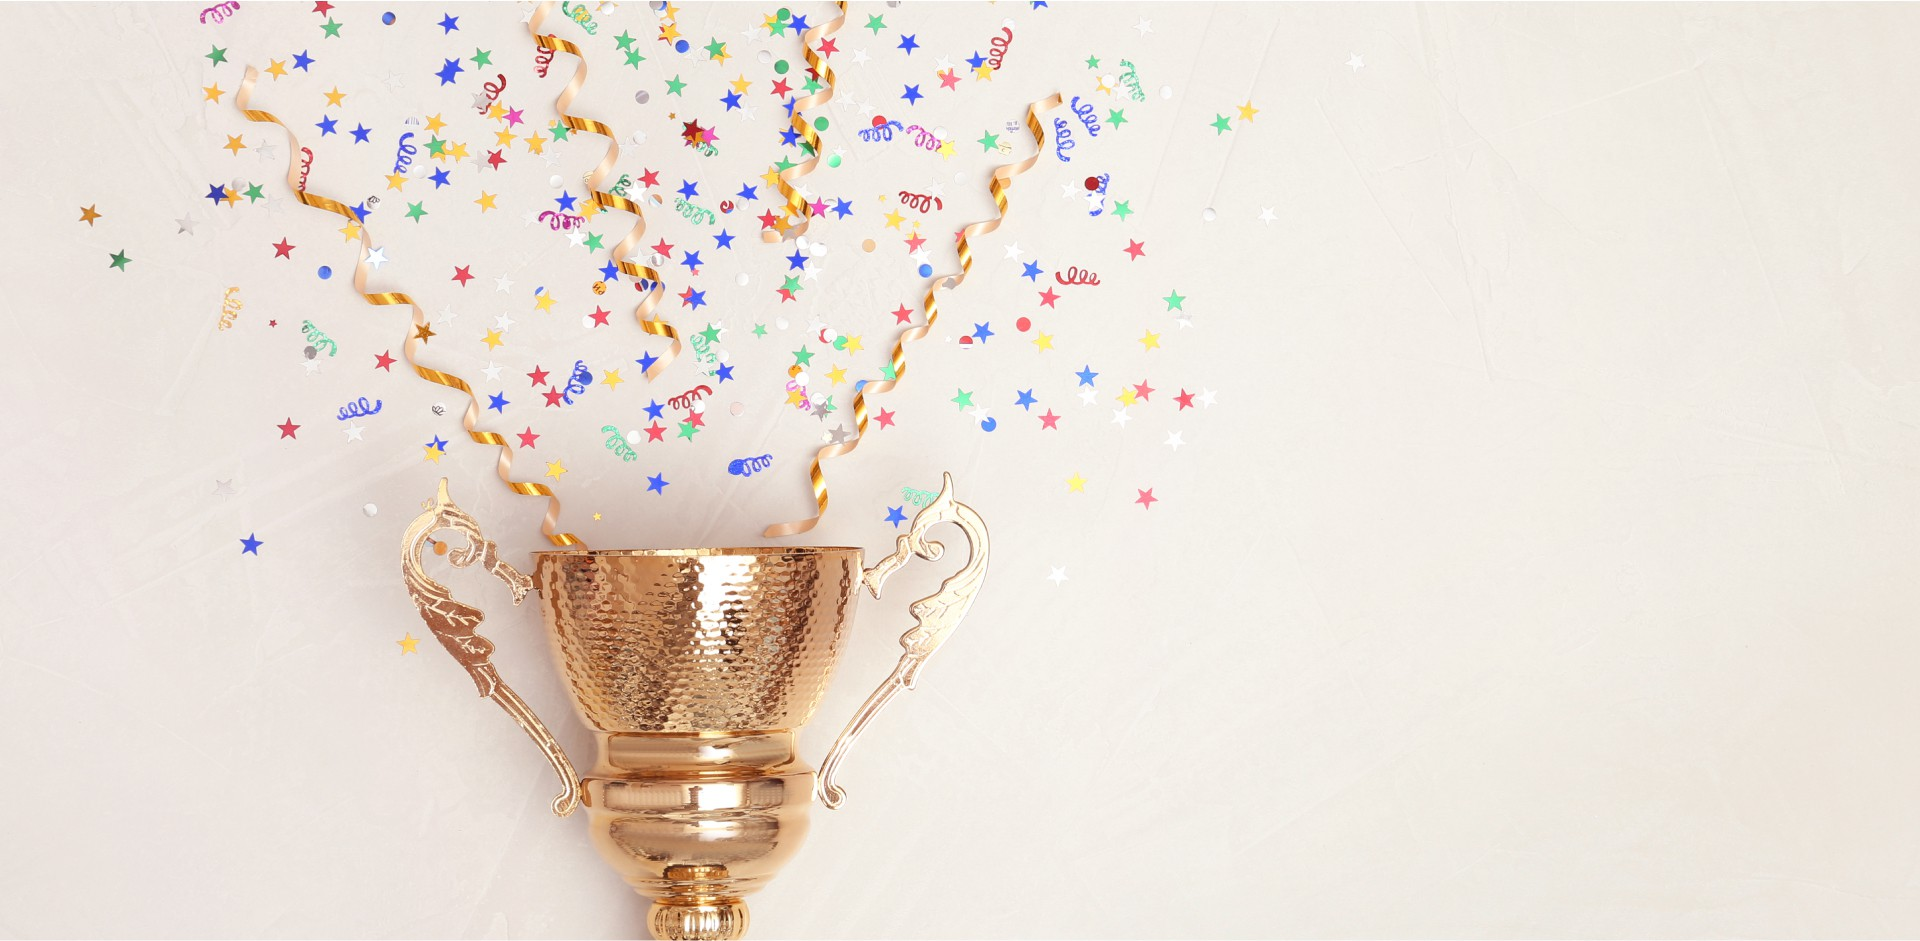 Trophy on white background with confetti coming out